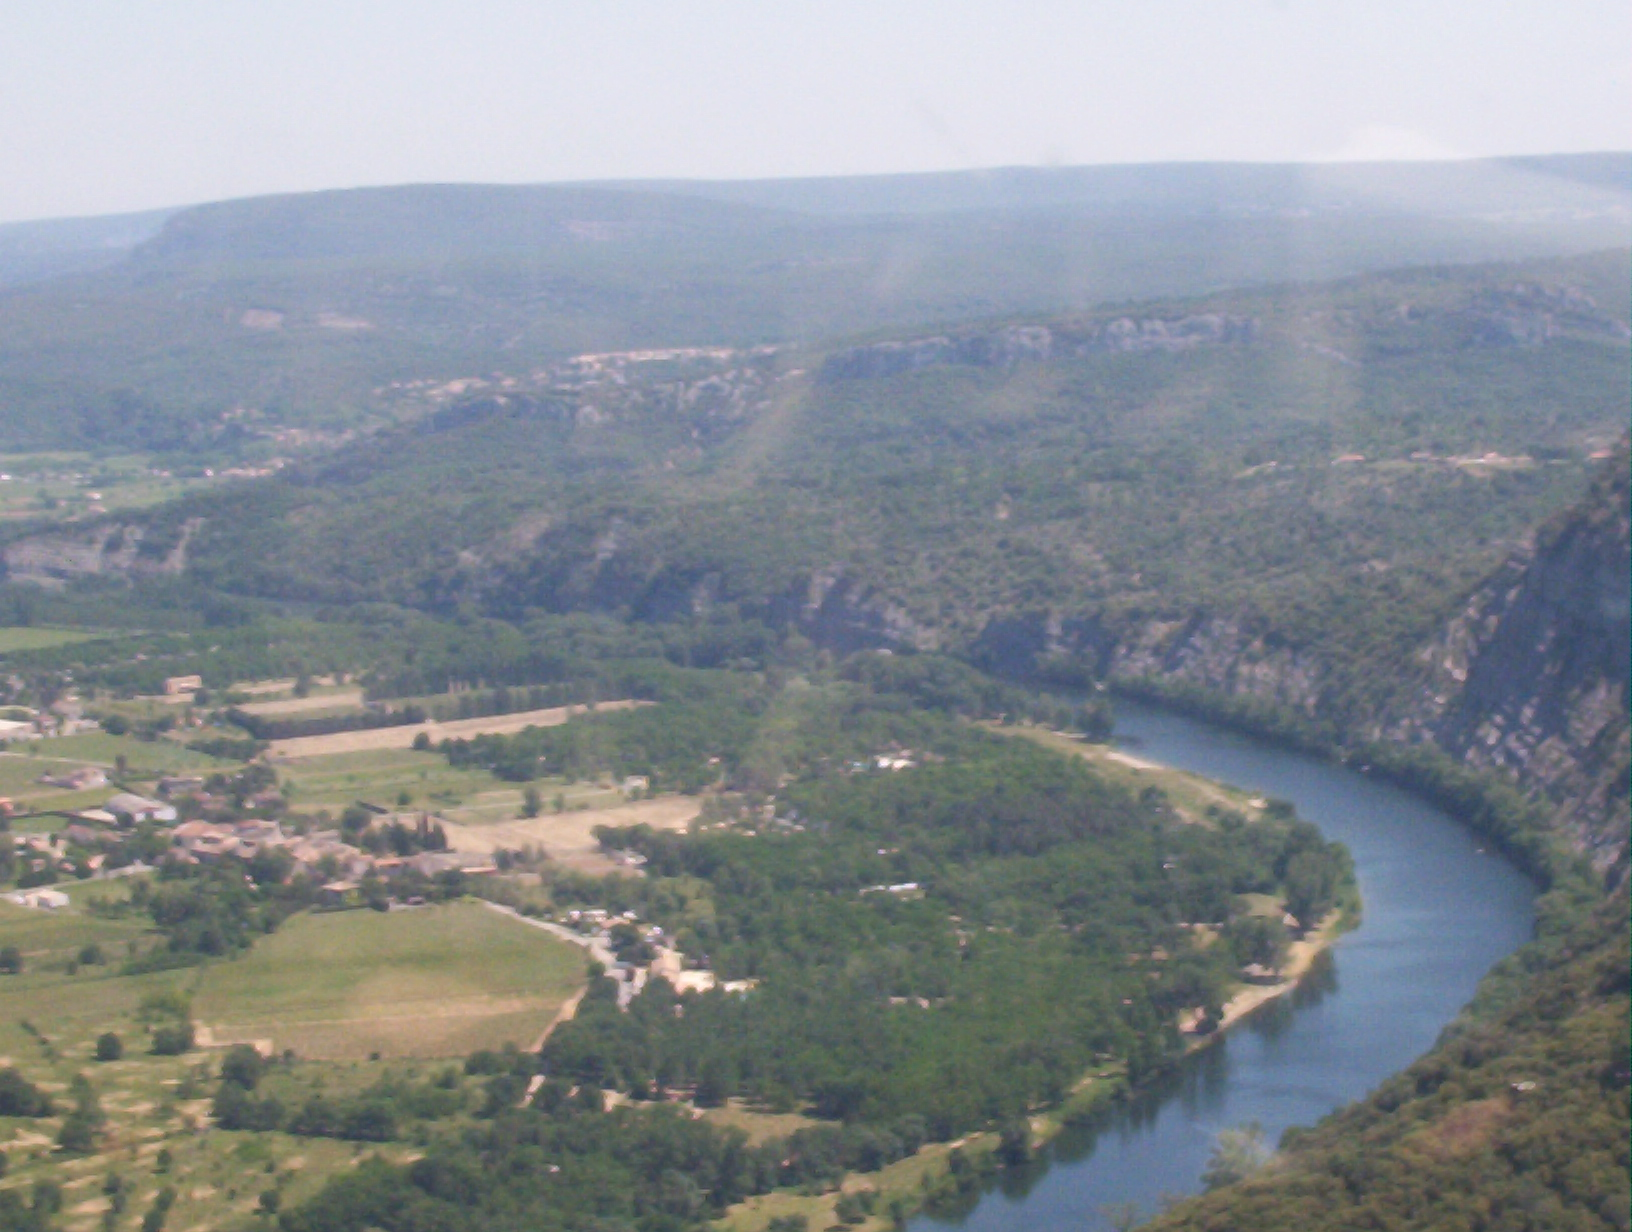 Photographs of the Ardeche river and gorge, mostly taken from the air during a short flight over the Ardeche Gorge.